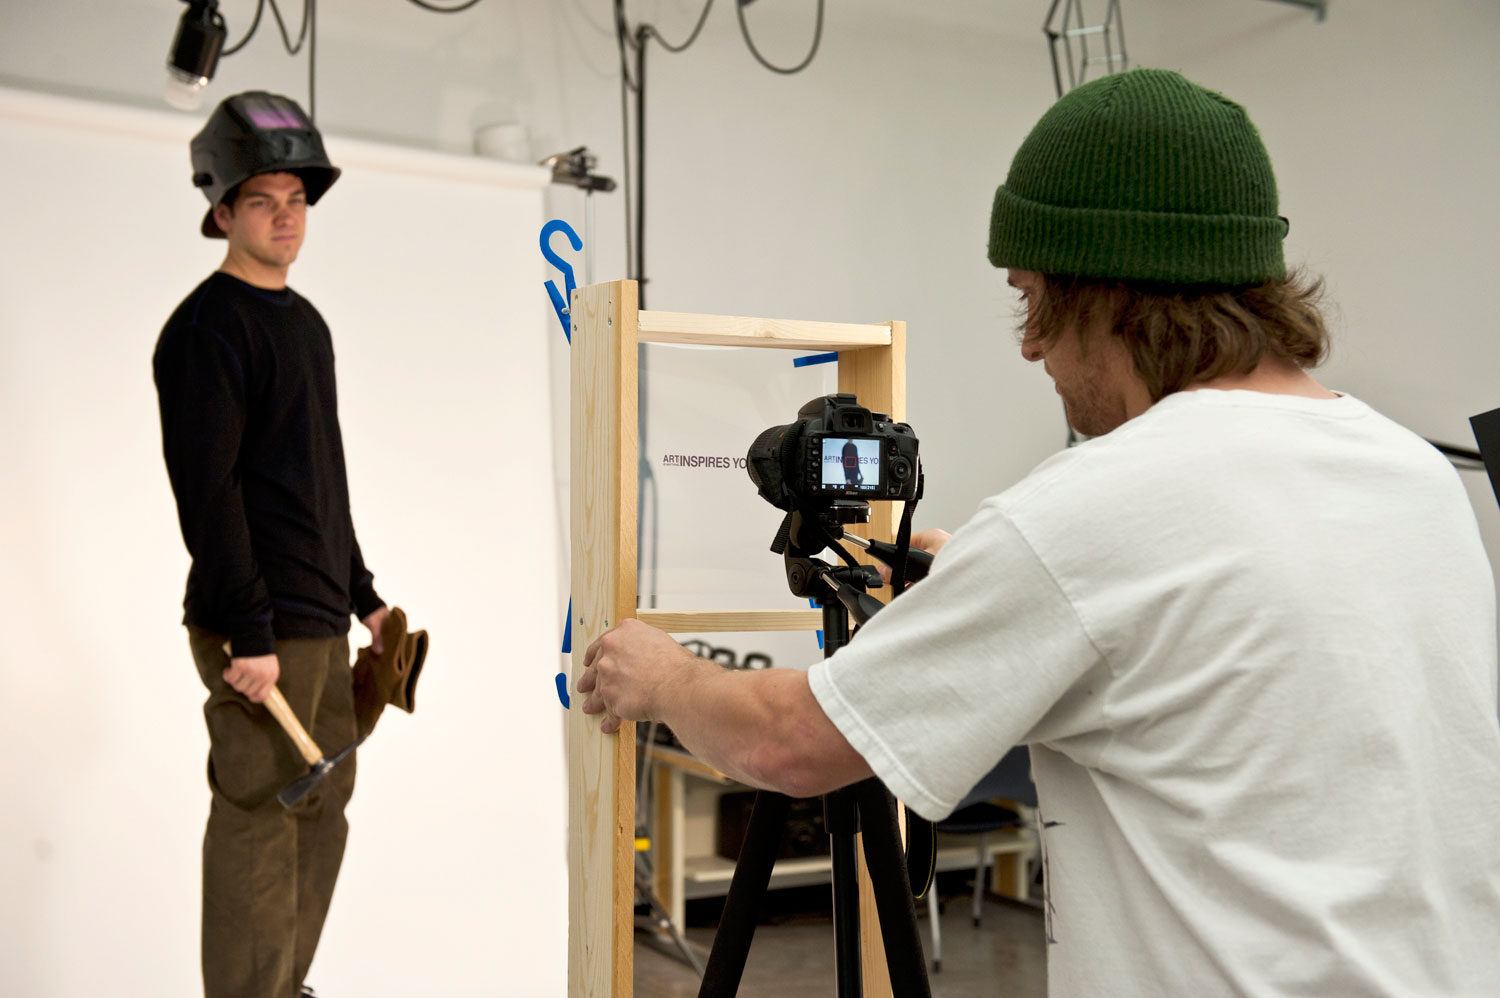 northern michigan university videography photography studio